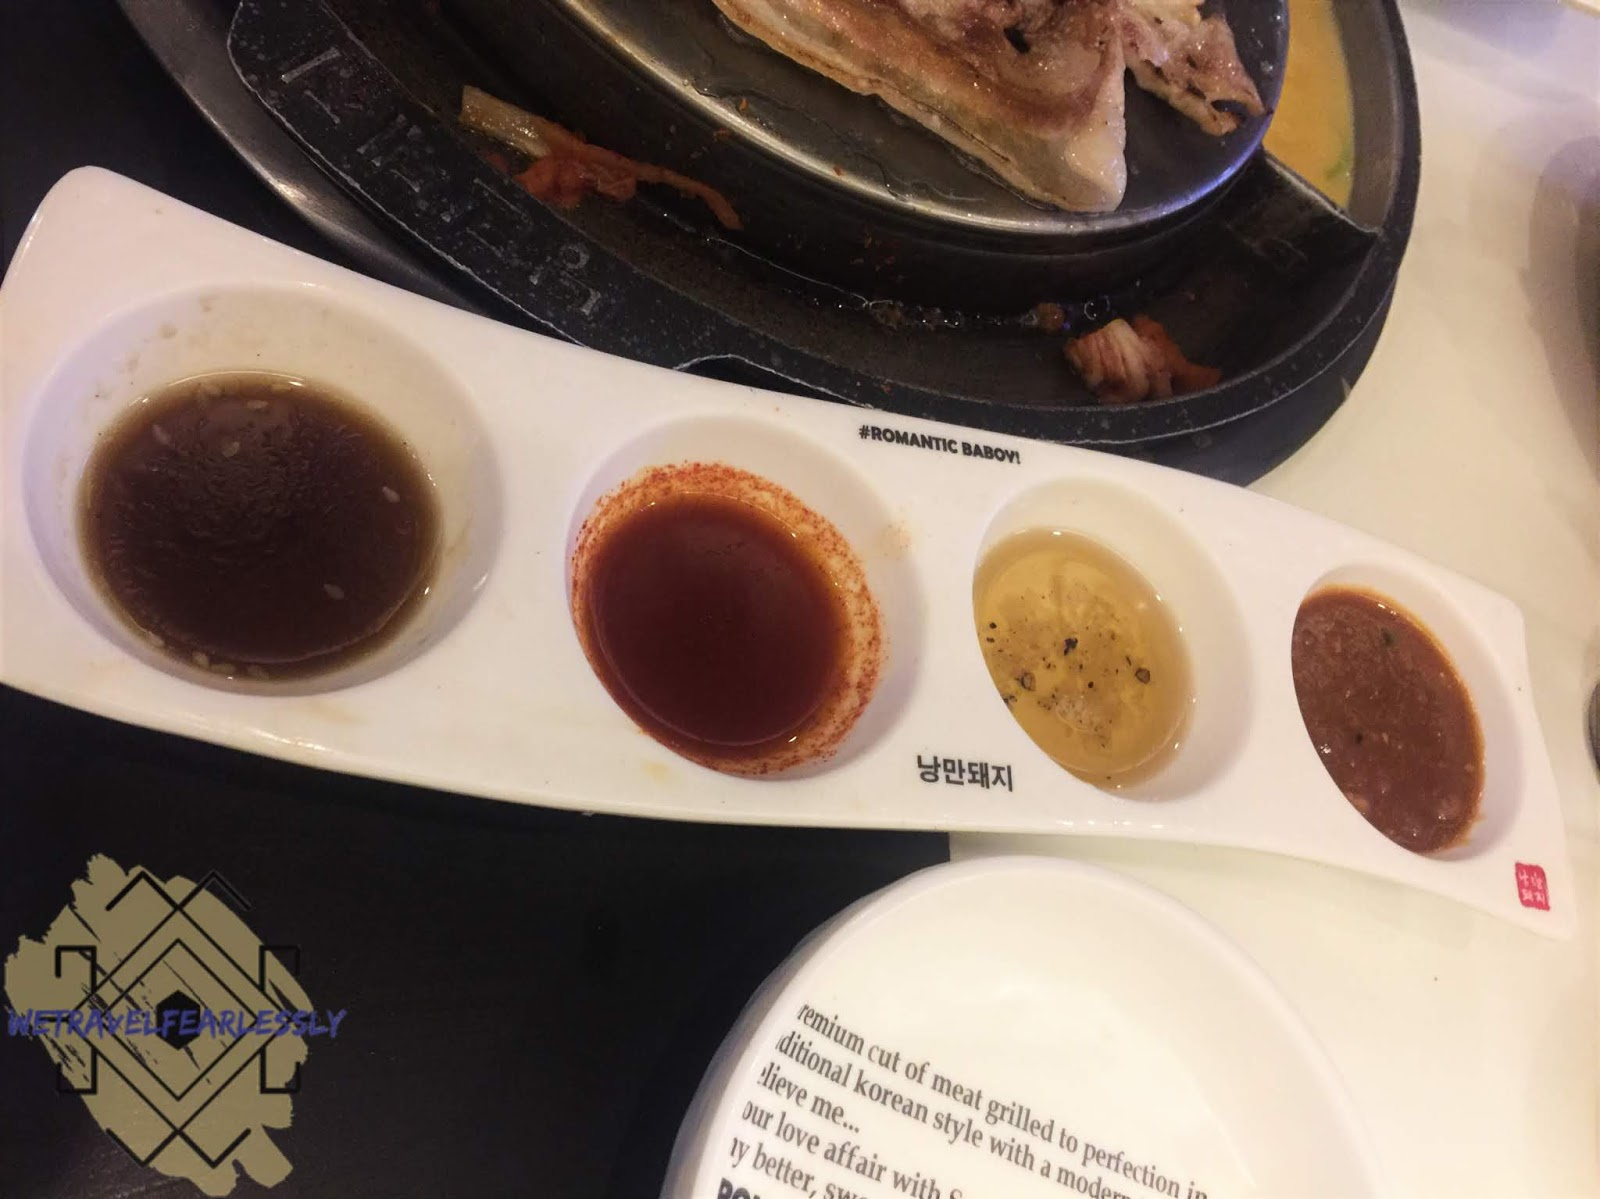 Sauces in Romantic Baboy in E. Rodriguez Jr. Avenue, Libis - WTF Review